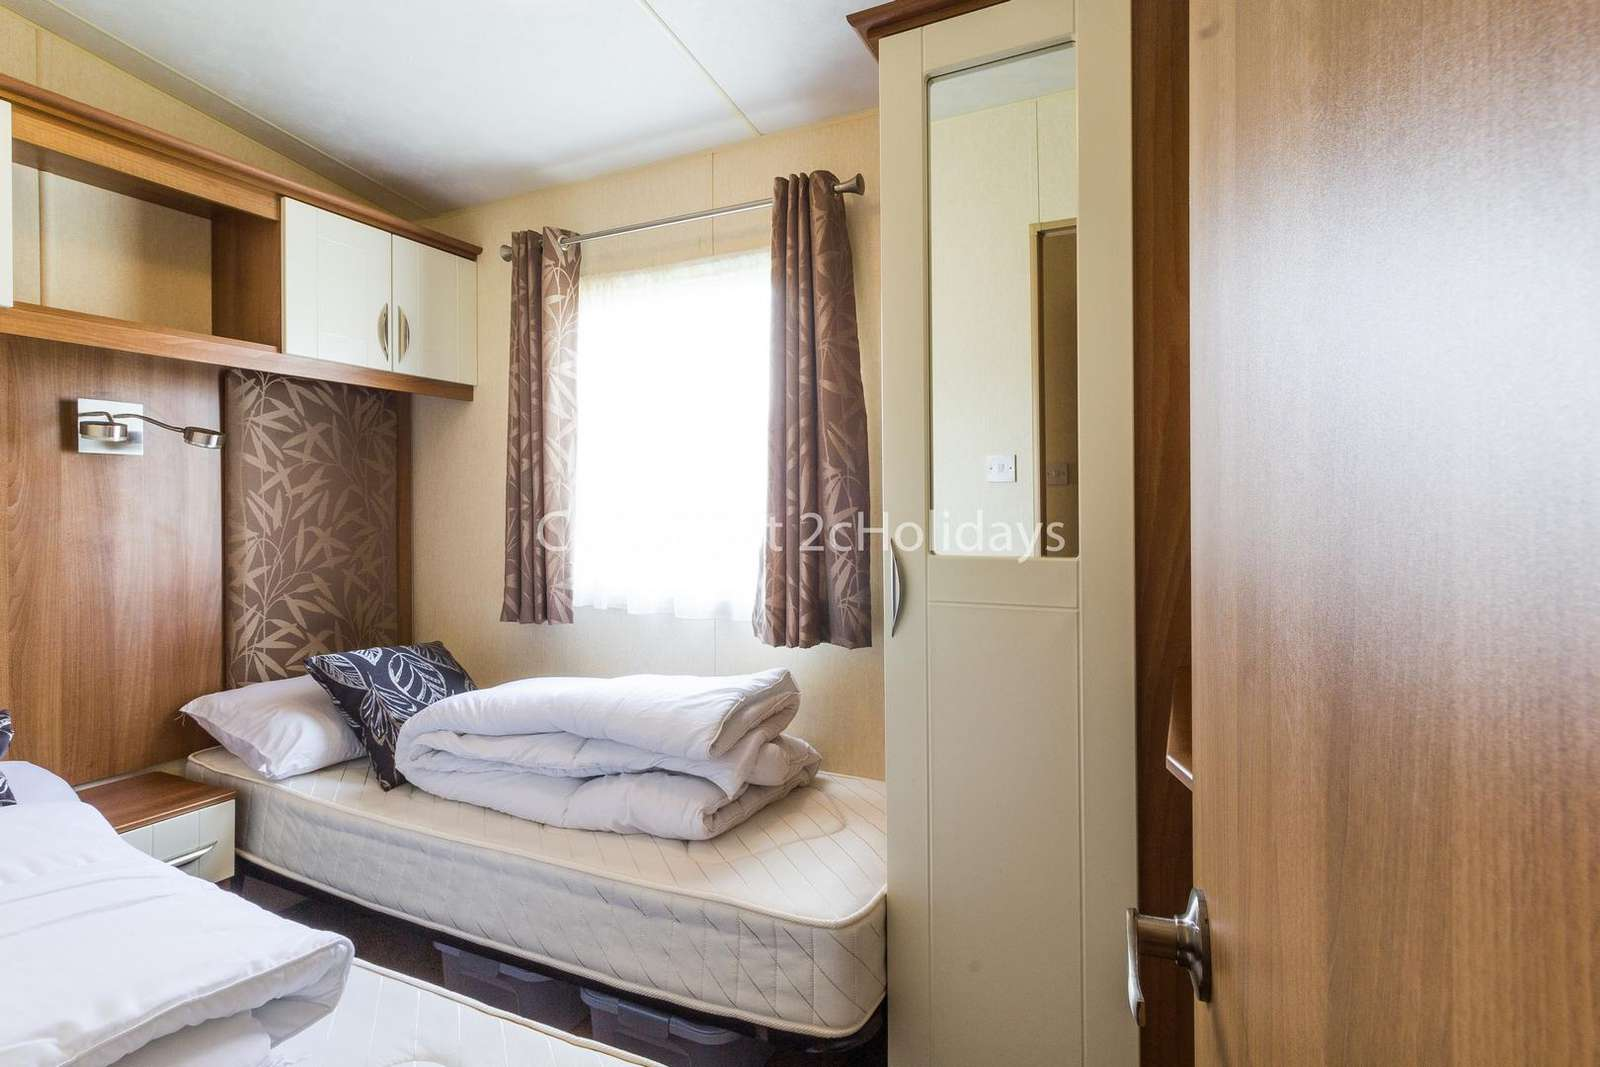 You can find plenty of storage in this twin bedroom!